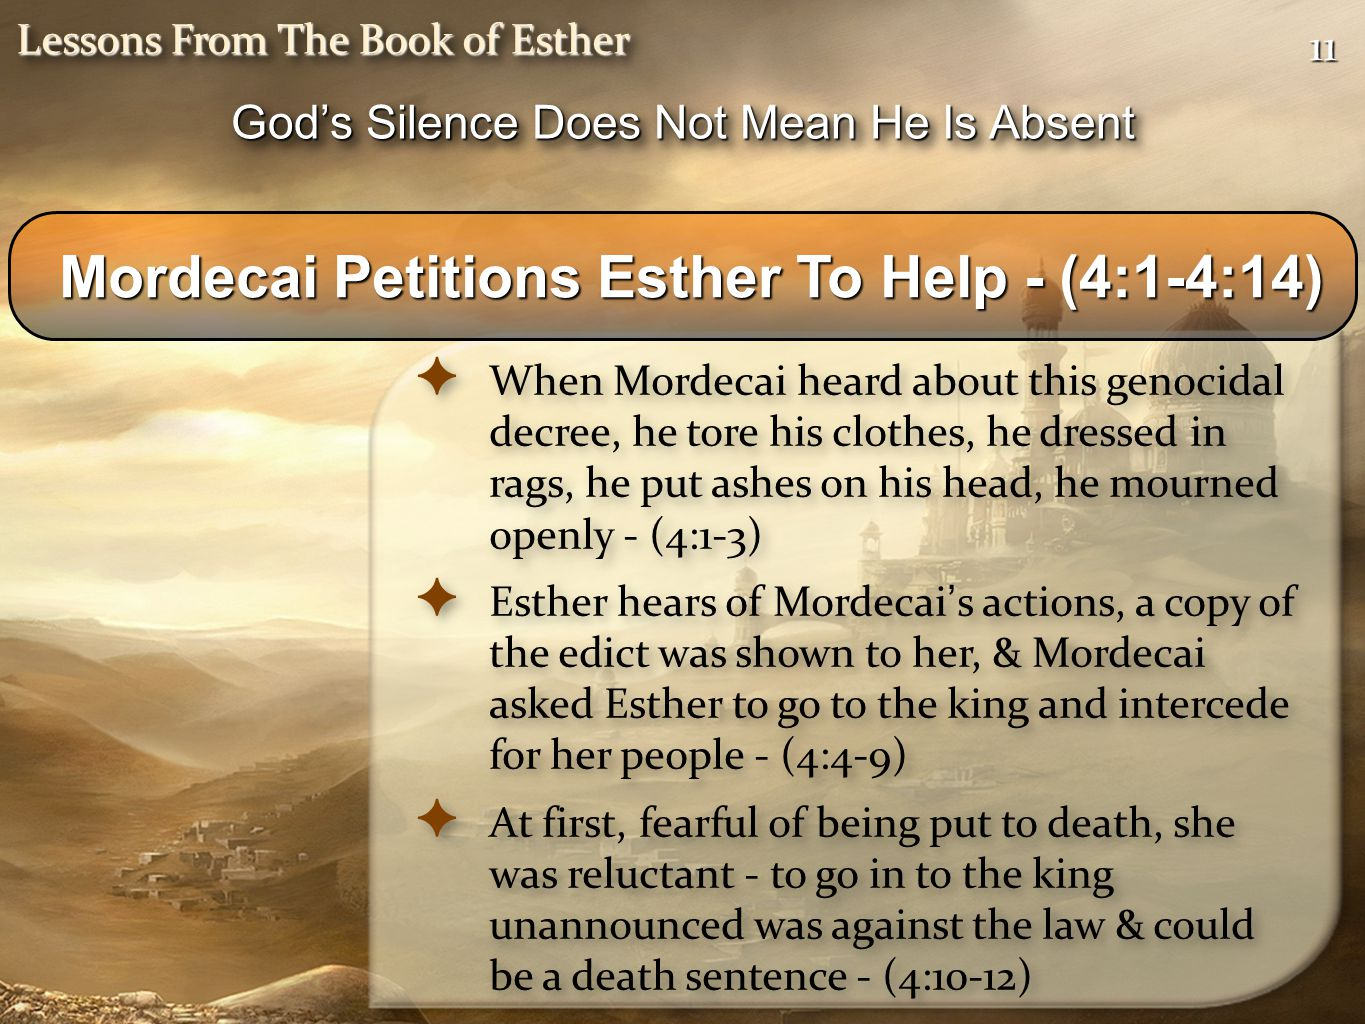 1111 Lessons From The Book of Esther Mordecai Petitions Esther To Help - (4:1-4:14) Mordecai Petitions Esther To Help - (4:1-4:14) ✦ When Mordecai heard about this genocidal decree, he tore his clothes, he dressed in rags, he put ashes on his head, he mourned openly - (4:1-3) ✦ Esther hears of Mordecai ' s actions, a copy of the edict was shown to her, & Mordecai asked Esther to go to the king and intercede for her people - (4:4-9) ✦ At first, fearful of being put to death, she was reluctant - to go in to the king unannounced was against the law & could be a death sentence - (4:10-12) ✦ When Mordecai heard about this genocidal decree, he tore his clothes, he dressed in rags, he put ashes on his head, he mourned openly - (4:1-3) ✦ Esther hears of Mordecai ' s actions, a copy of the edict was shown to her, & Mordecai asked Esther to go to the king and intercede for her people - (4:4-9) ✦ At first, fearful of being put to death, she was reluctant - to go in to the king unannounced was against the law & could be a death sentence - (4:10-12) God's Silence Does Not Mean He Is Absent